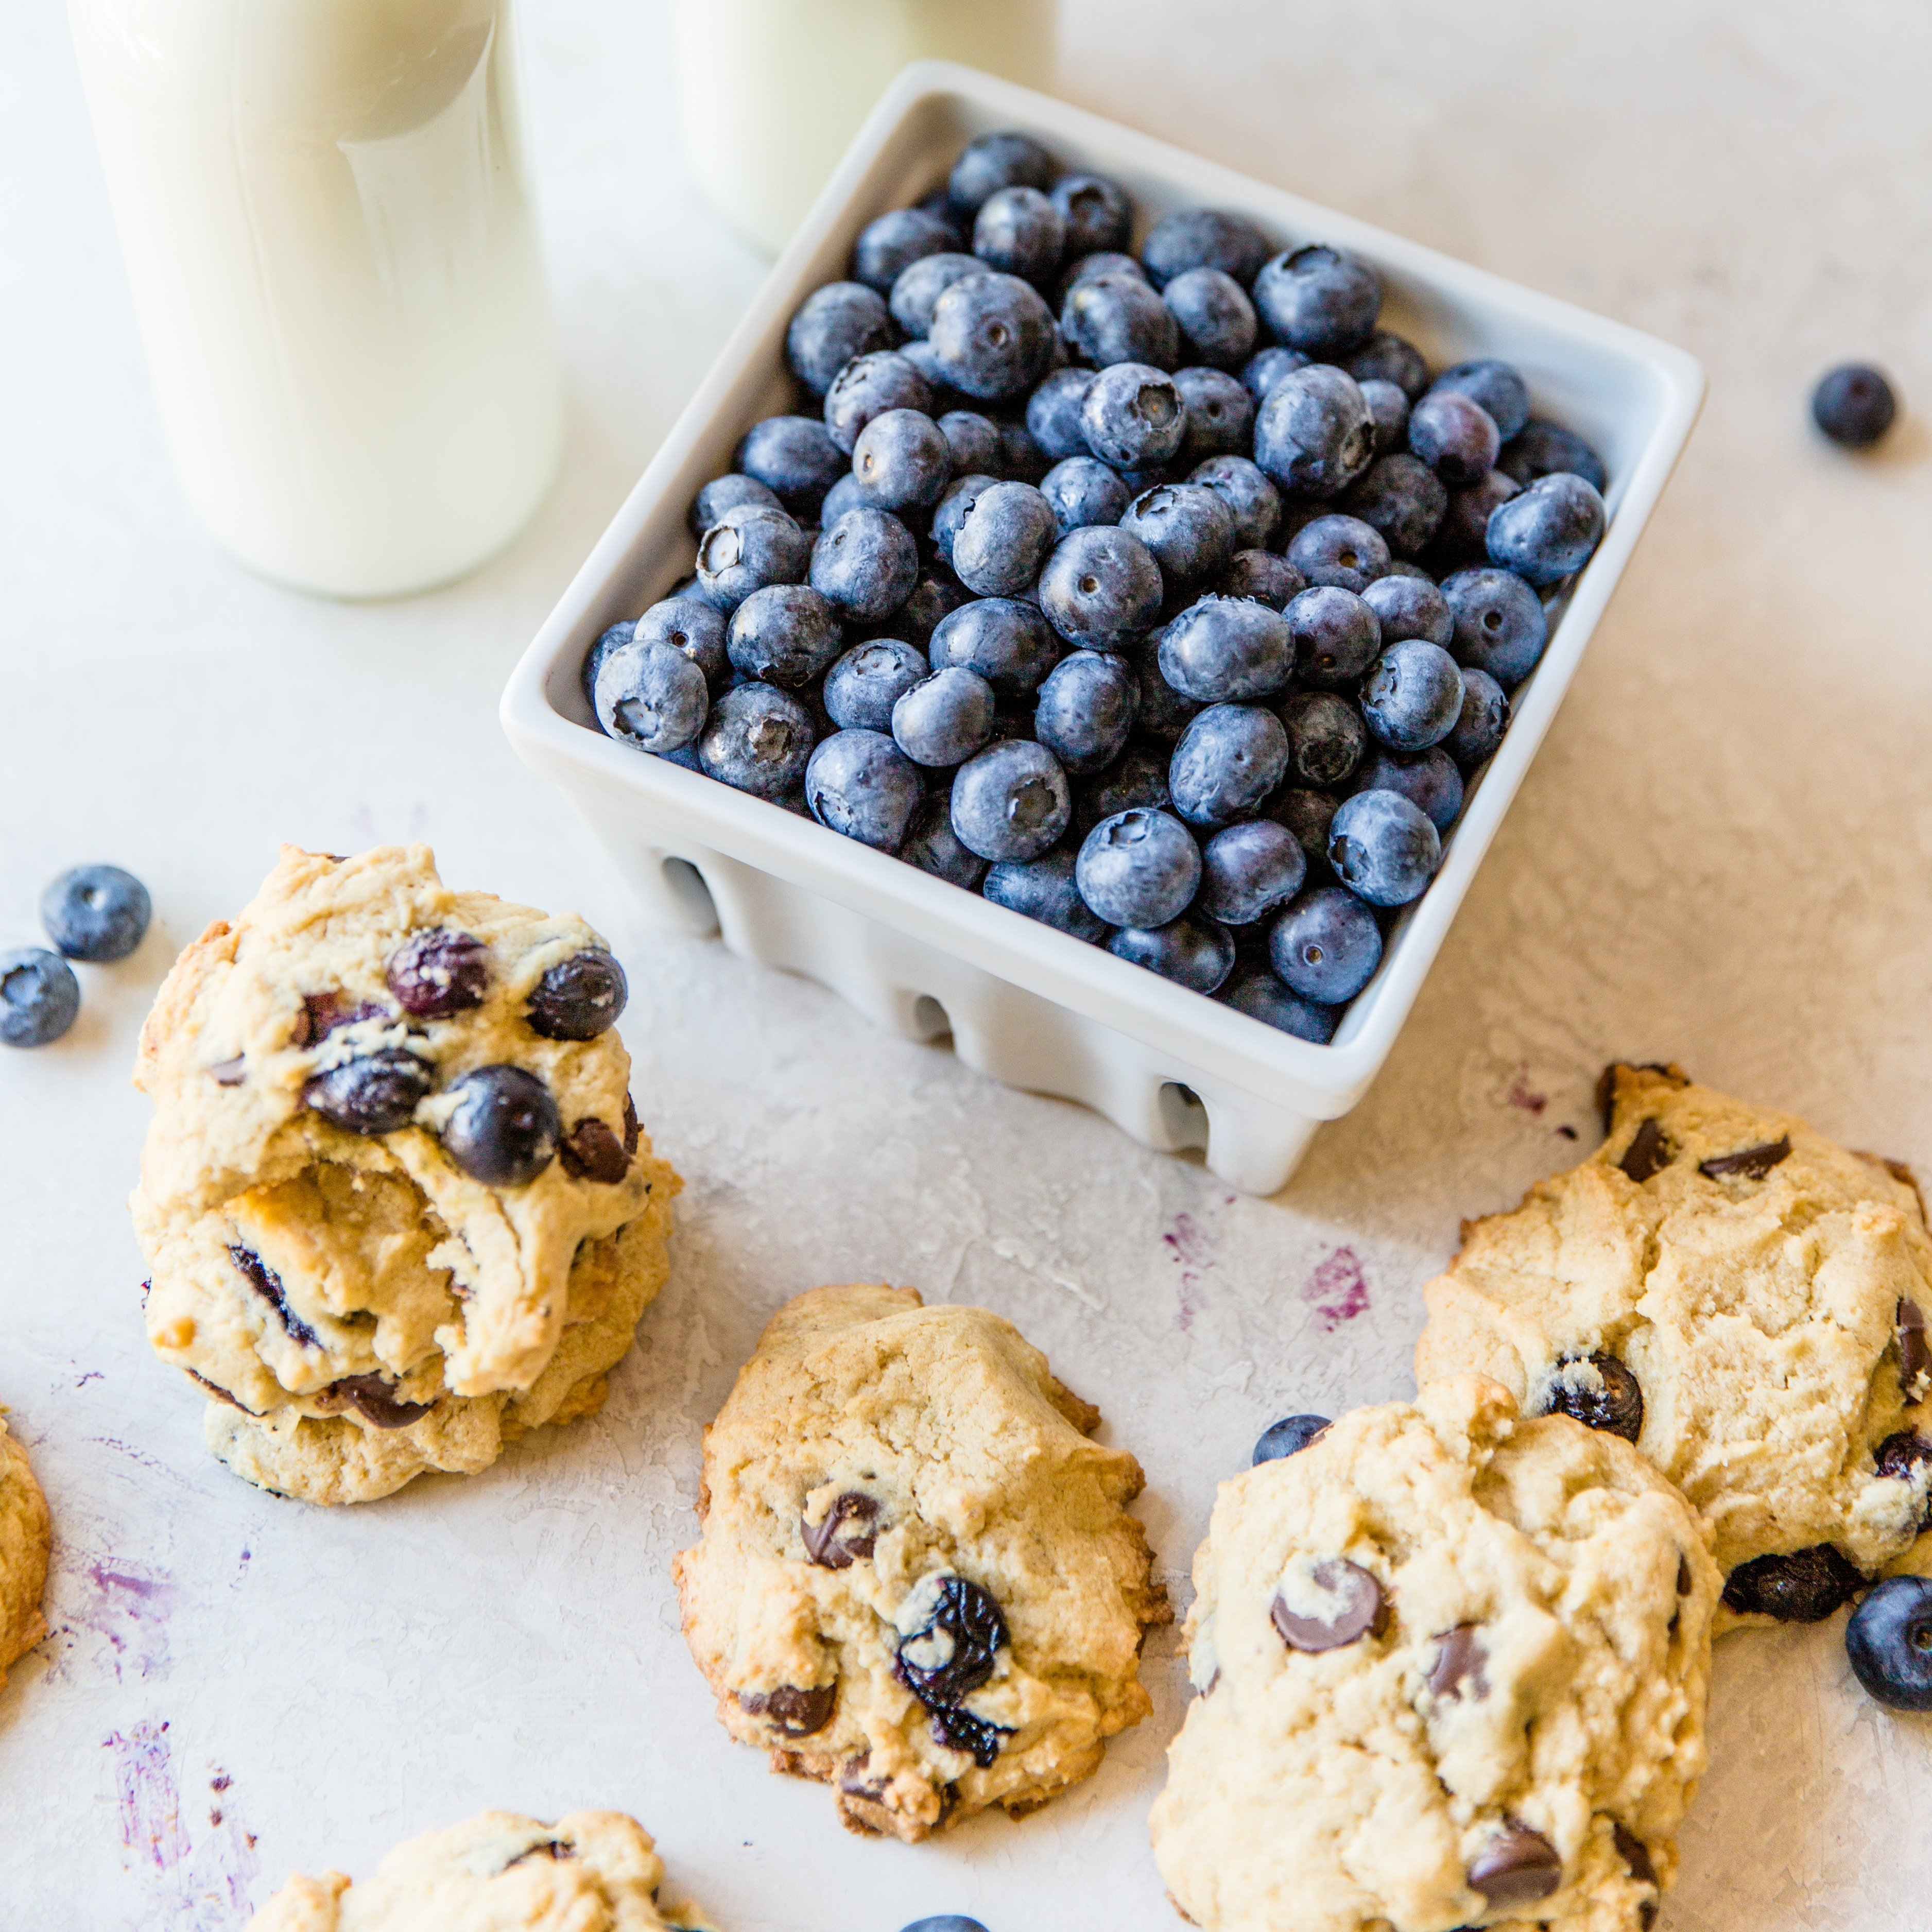 Blueberries 101: Storage and Serving Success